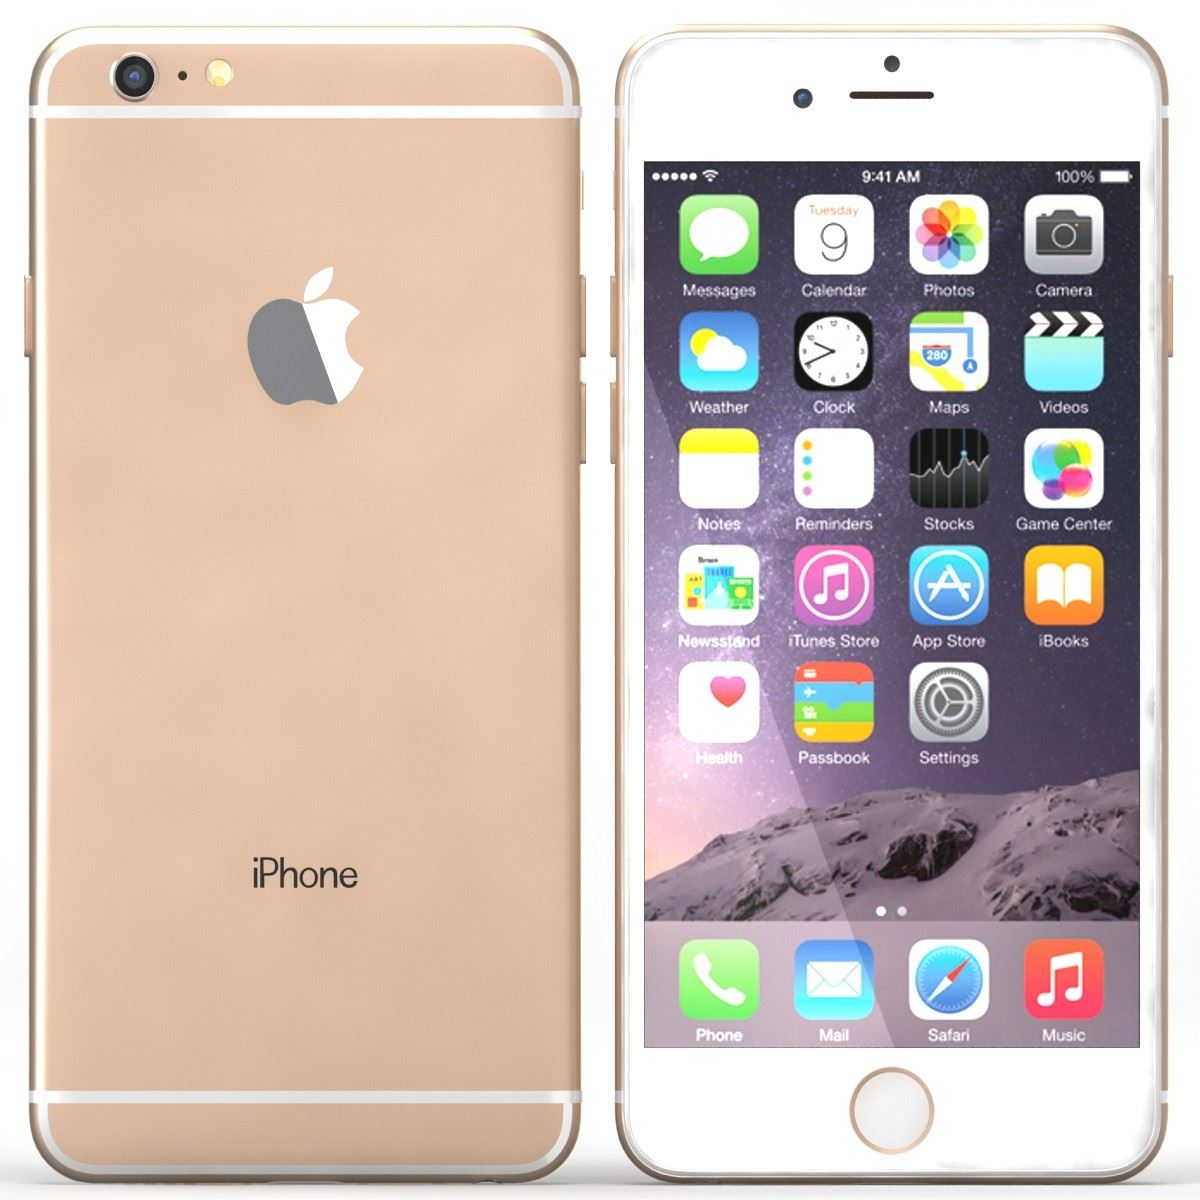 Apple iPhone 6 16GB Smartphone - Ting - Gold - Excellent Condition ... 7d64130899